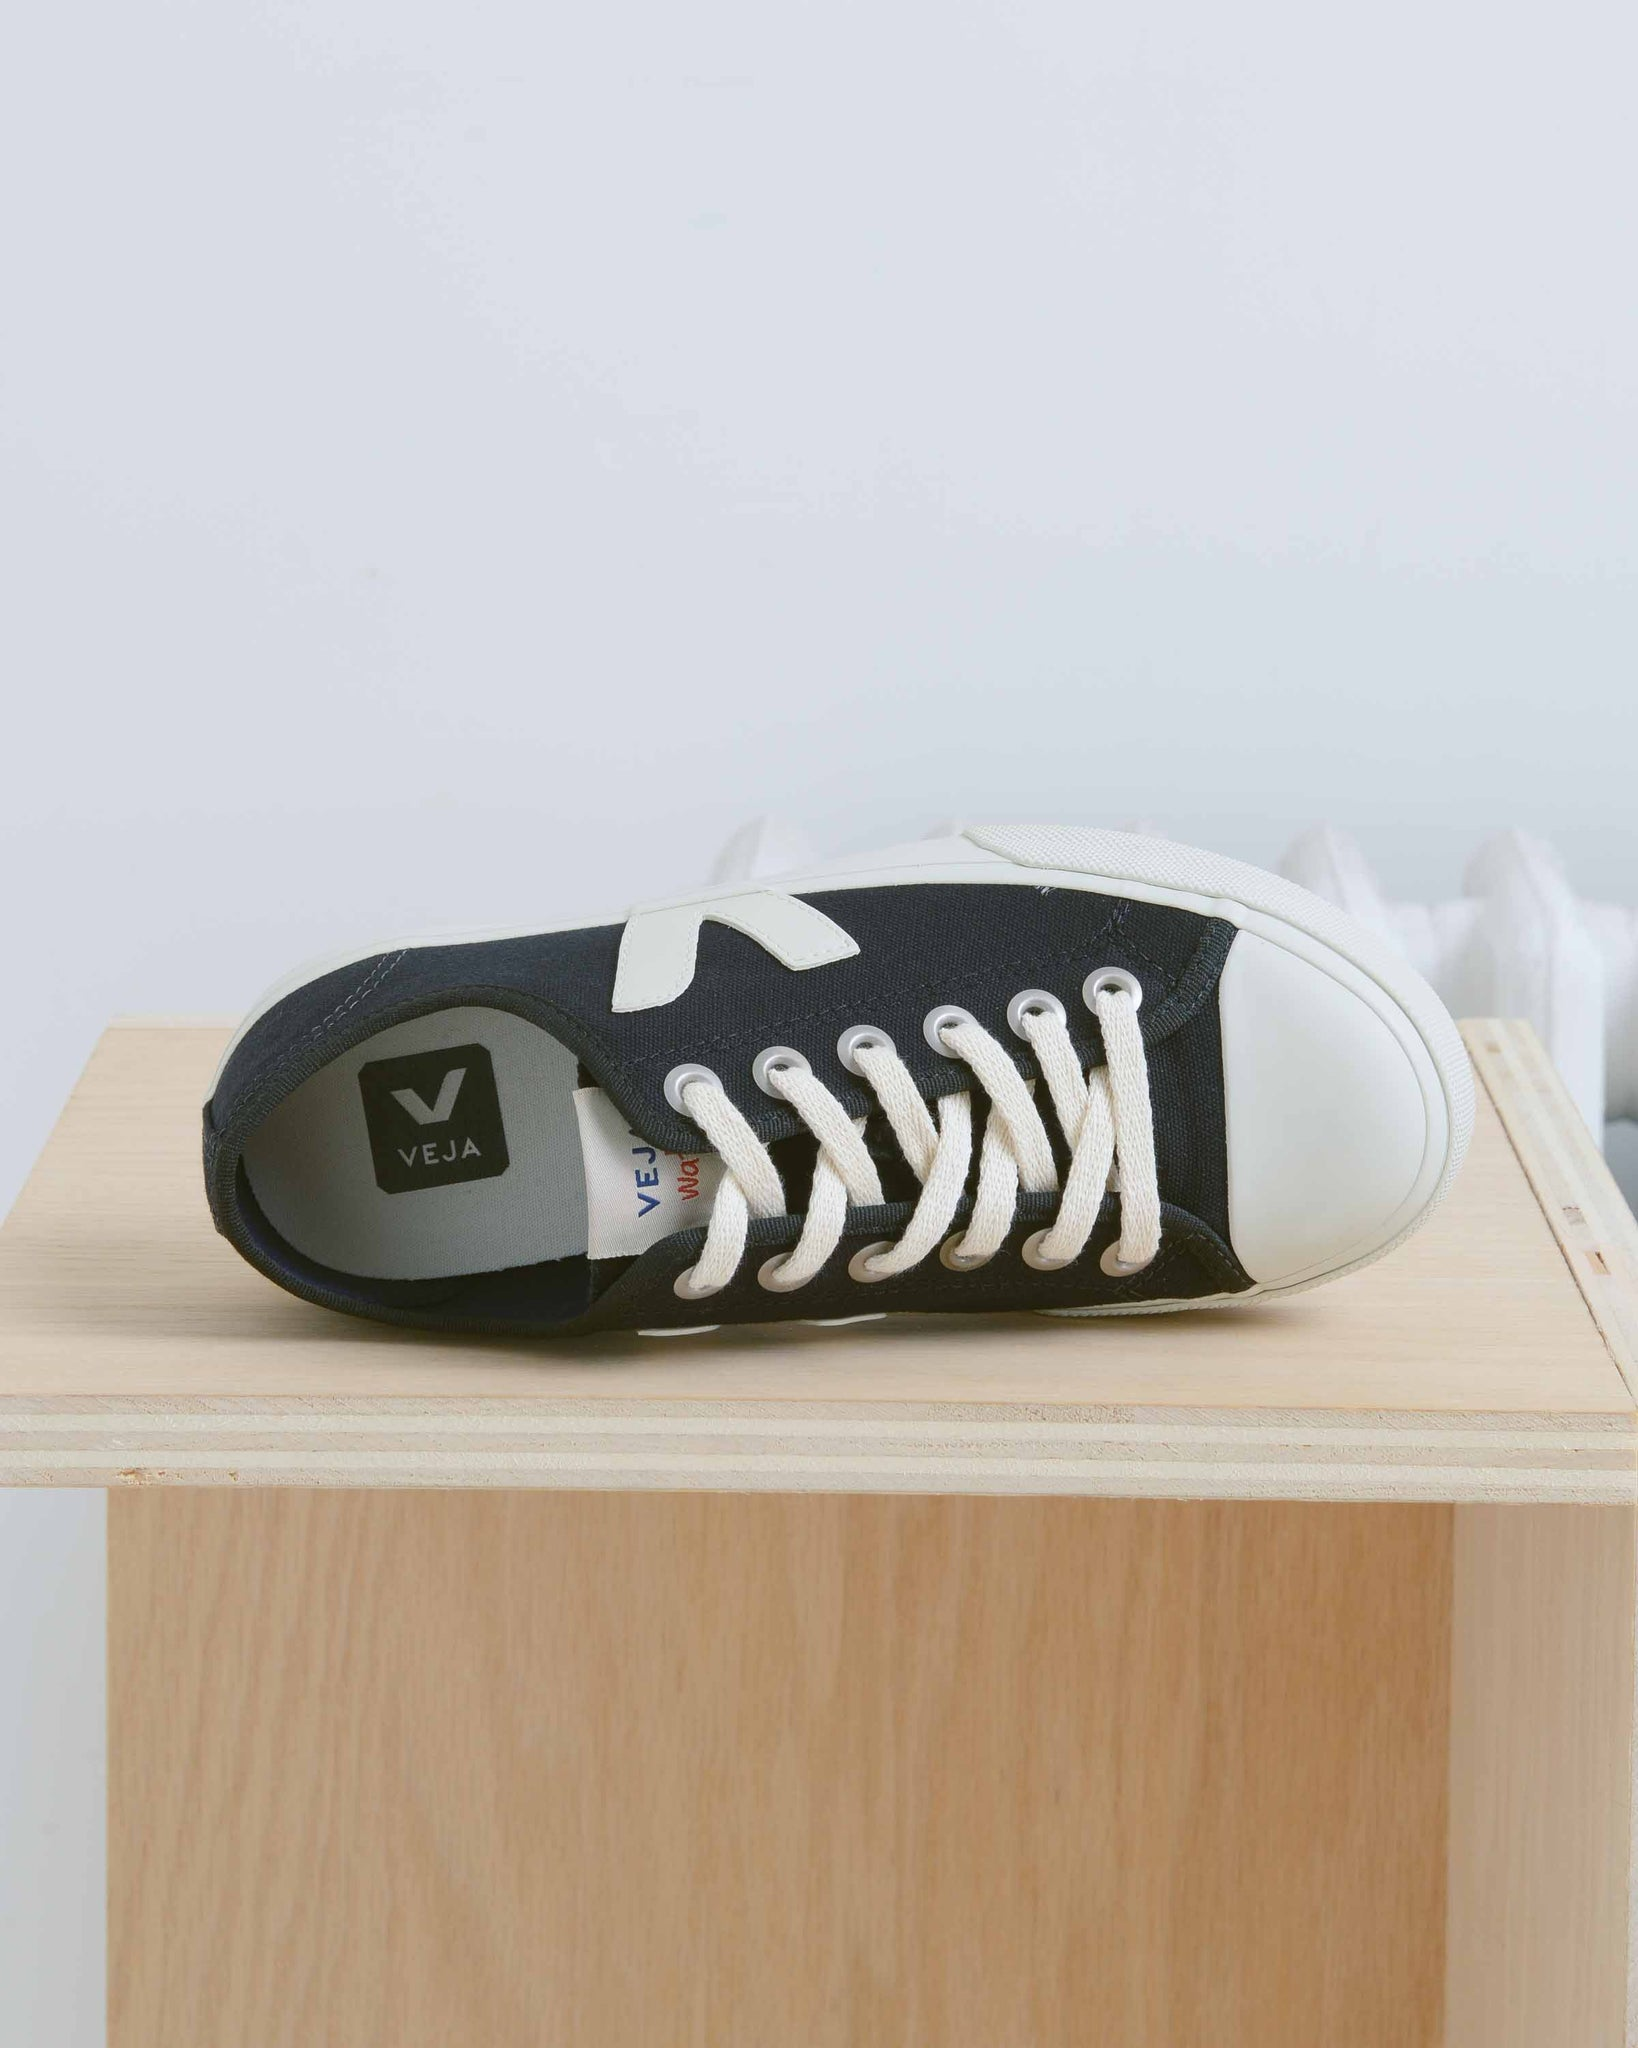 Black Wata Sneakers